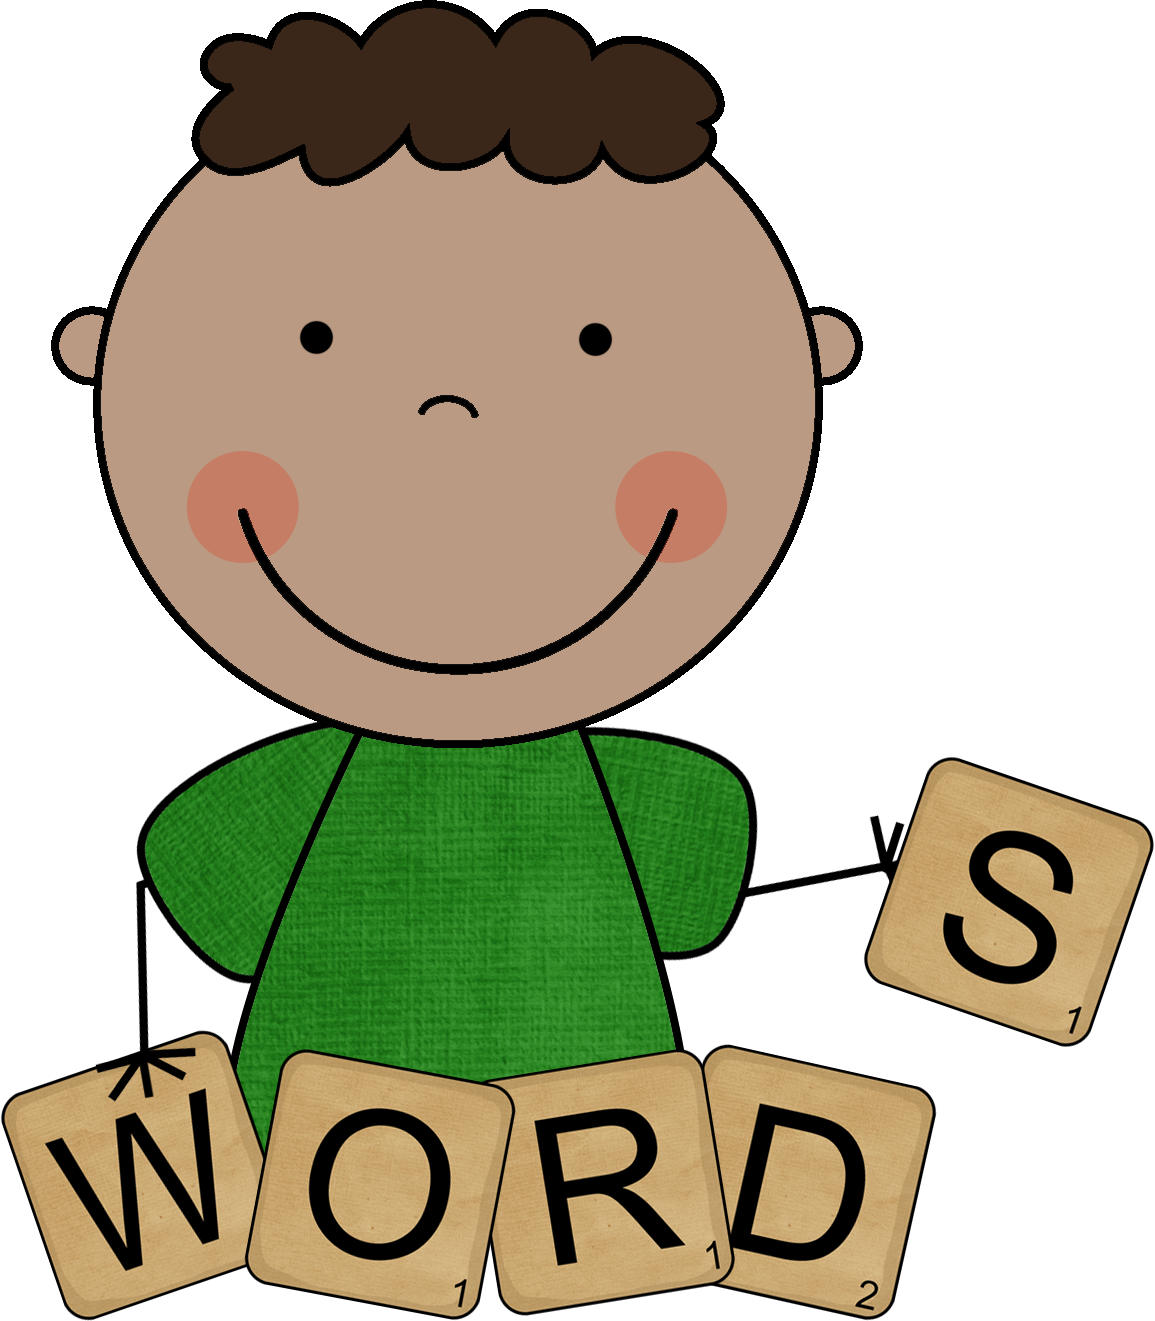 Wor choice clipart clipart download Spelling clipart word choice, Spelling word choice ... clipart download